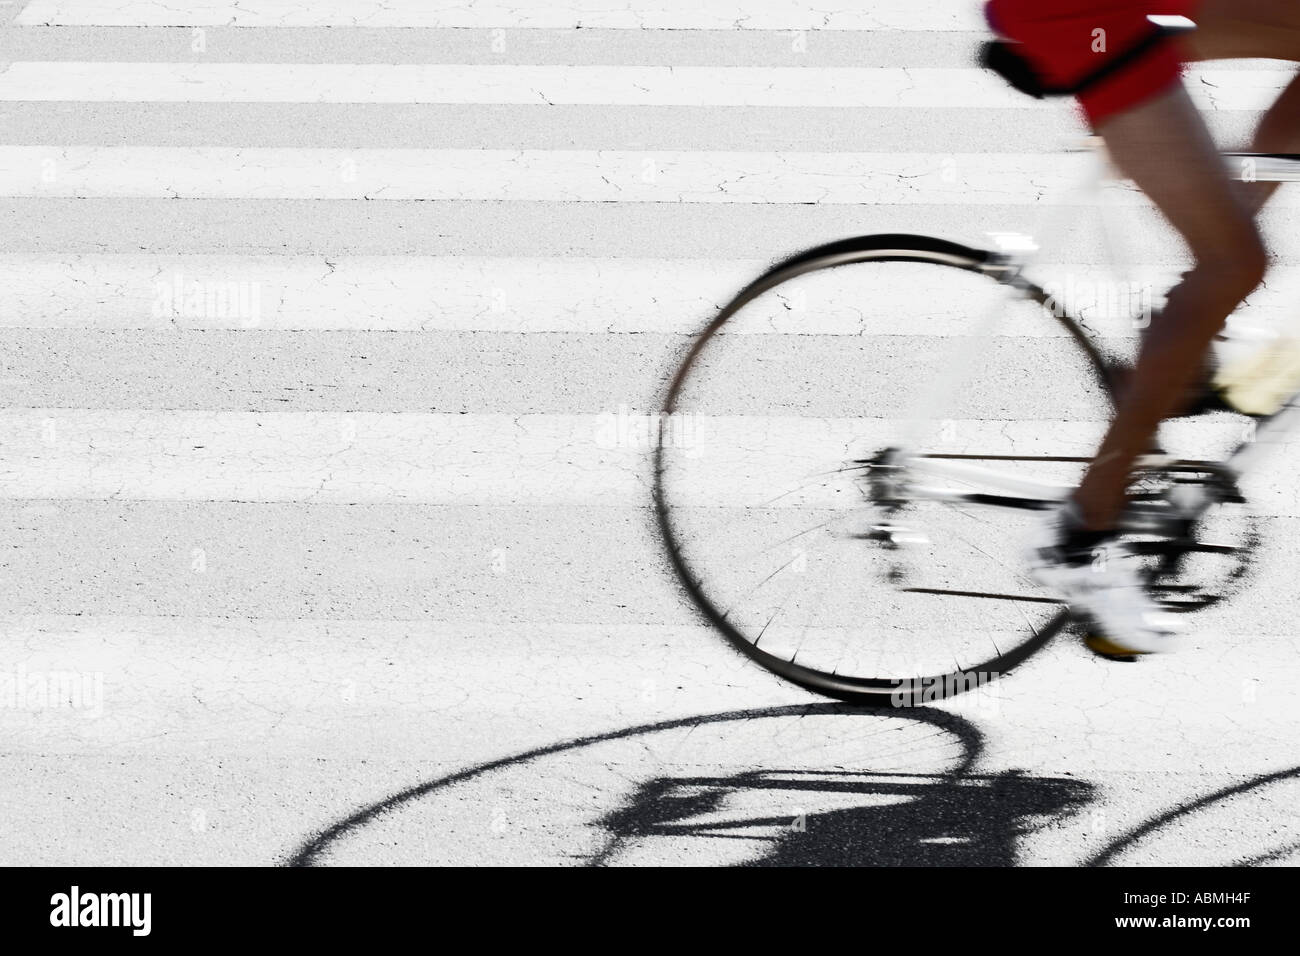 Bicycle Rider At Crosswalk - Stock Image